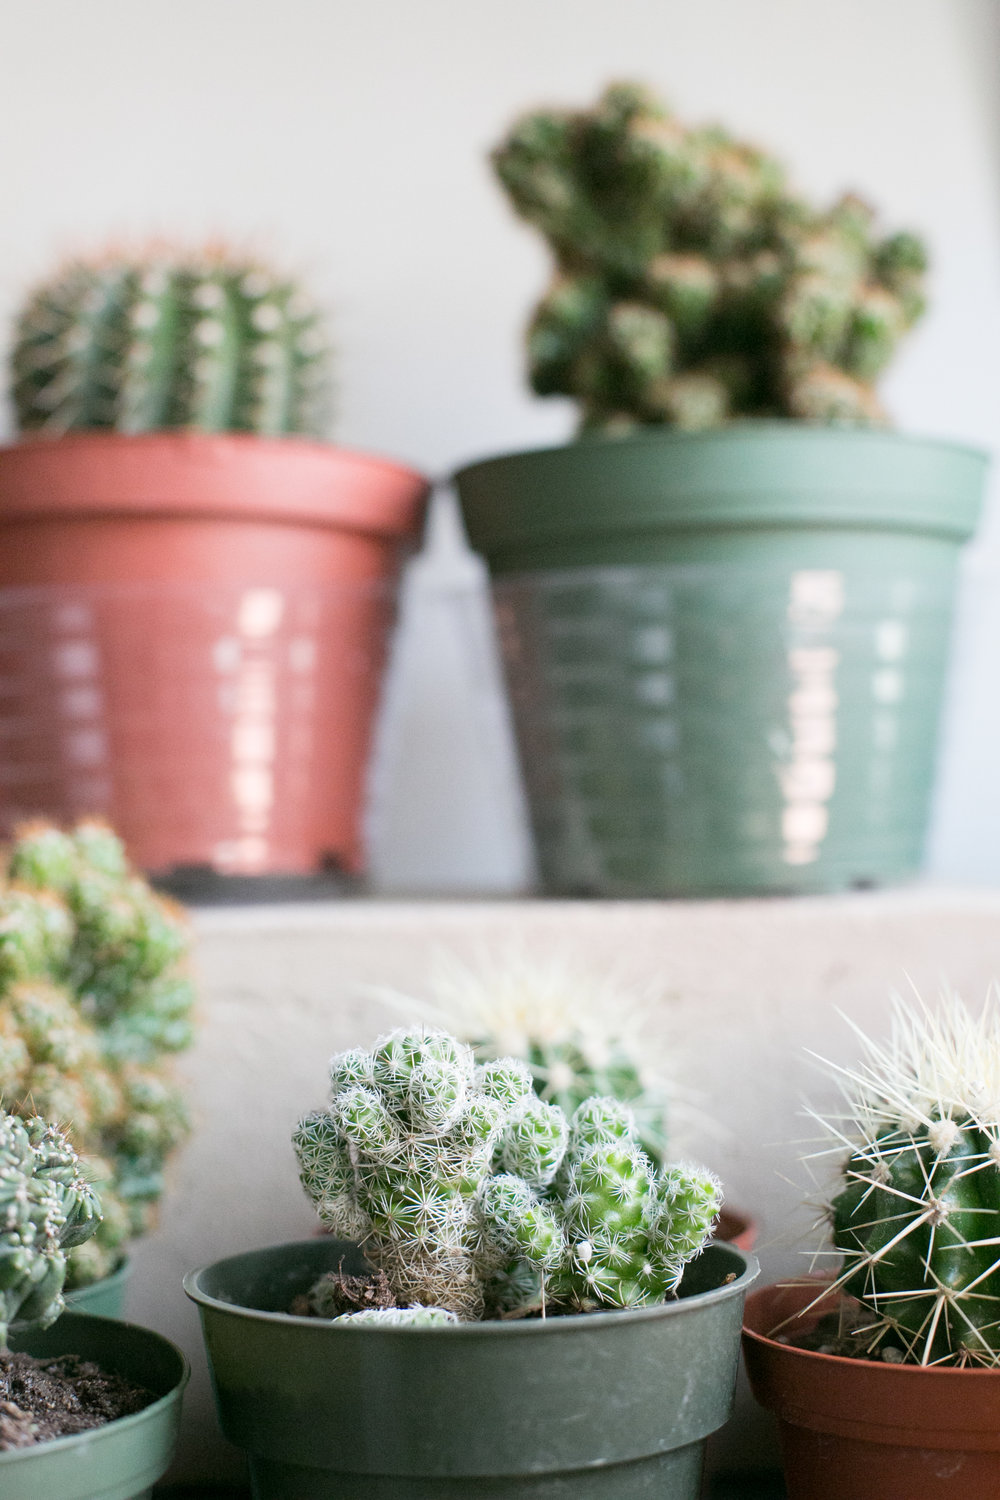 The Thimble Cactus ( Mammillaria gracilis fragilis) is a great starter cactus for beginners.